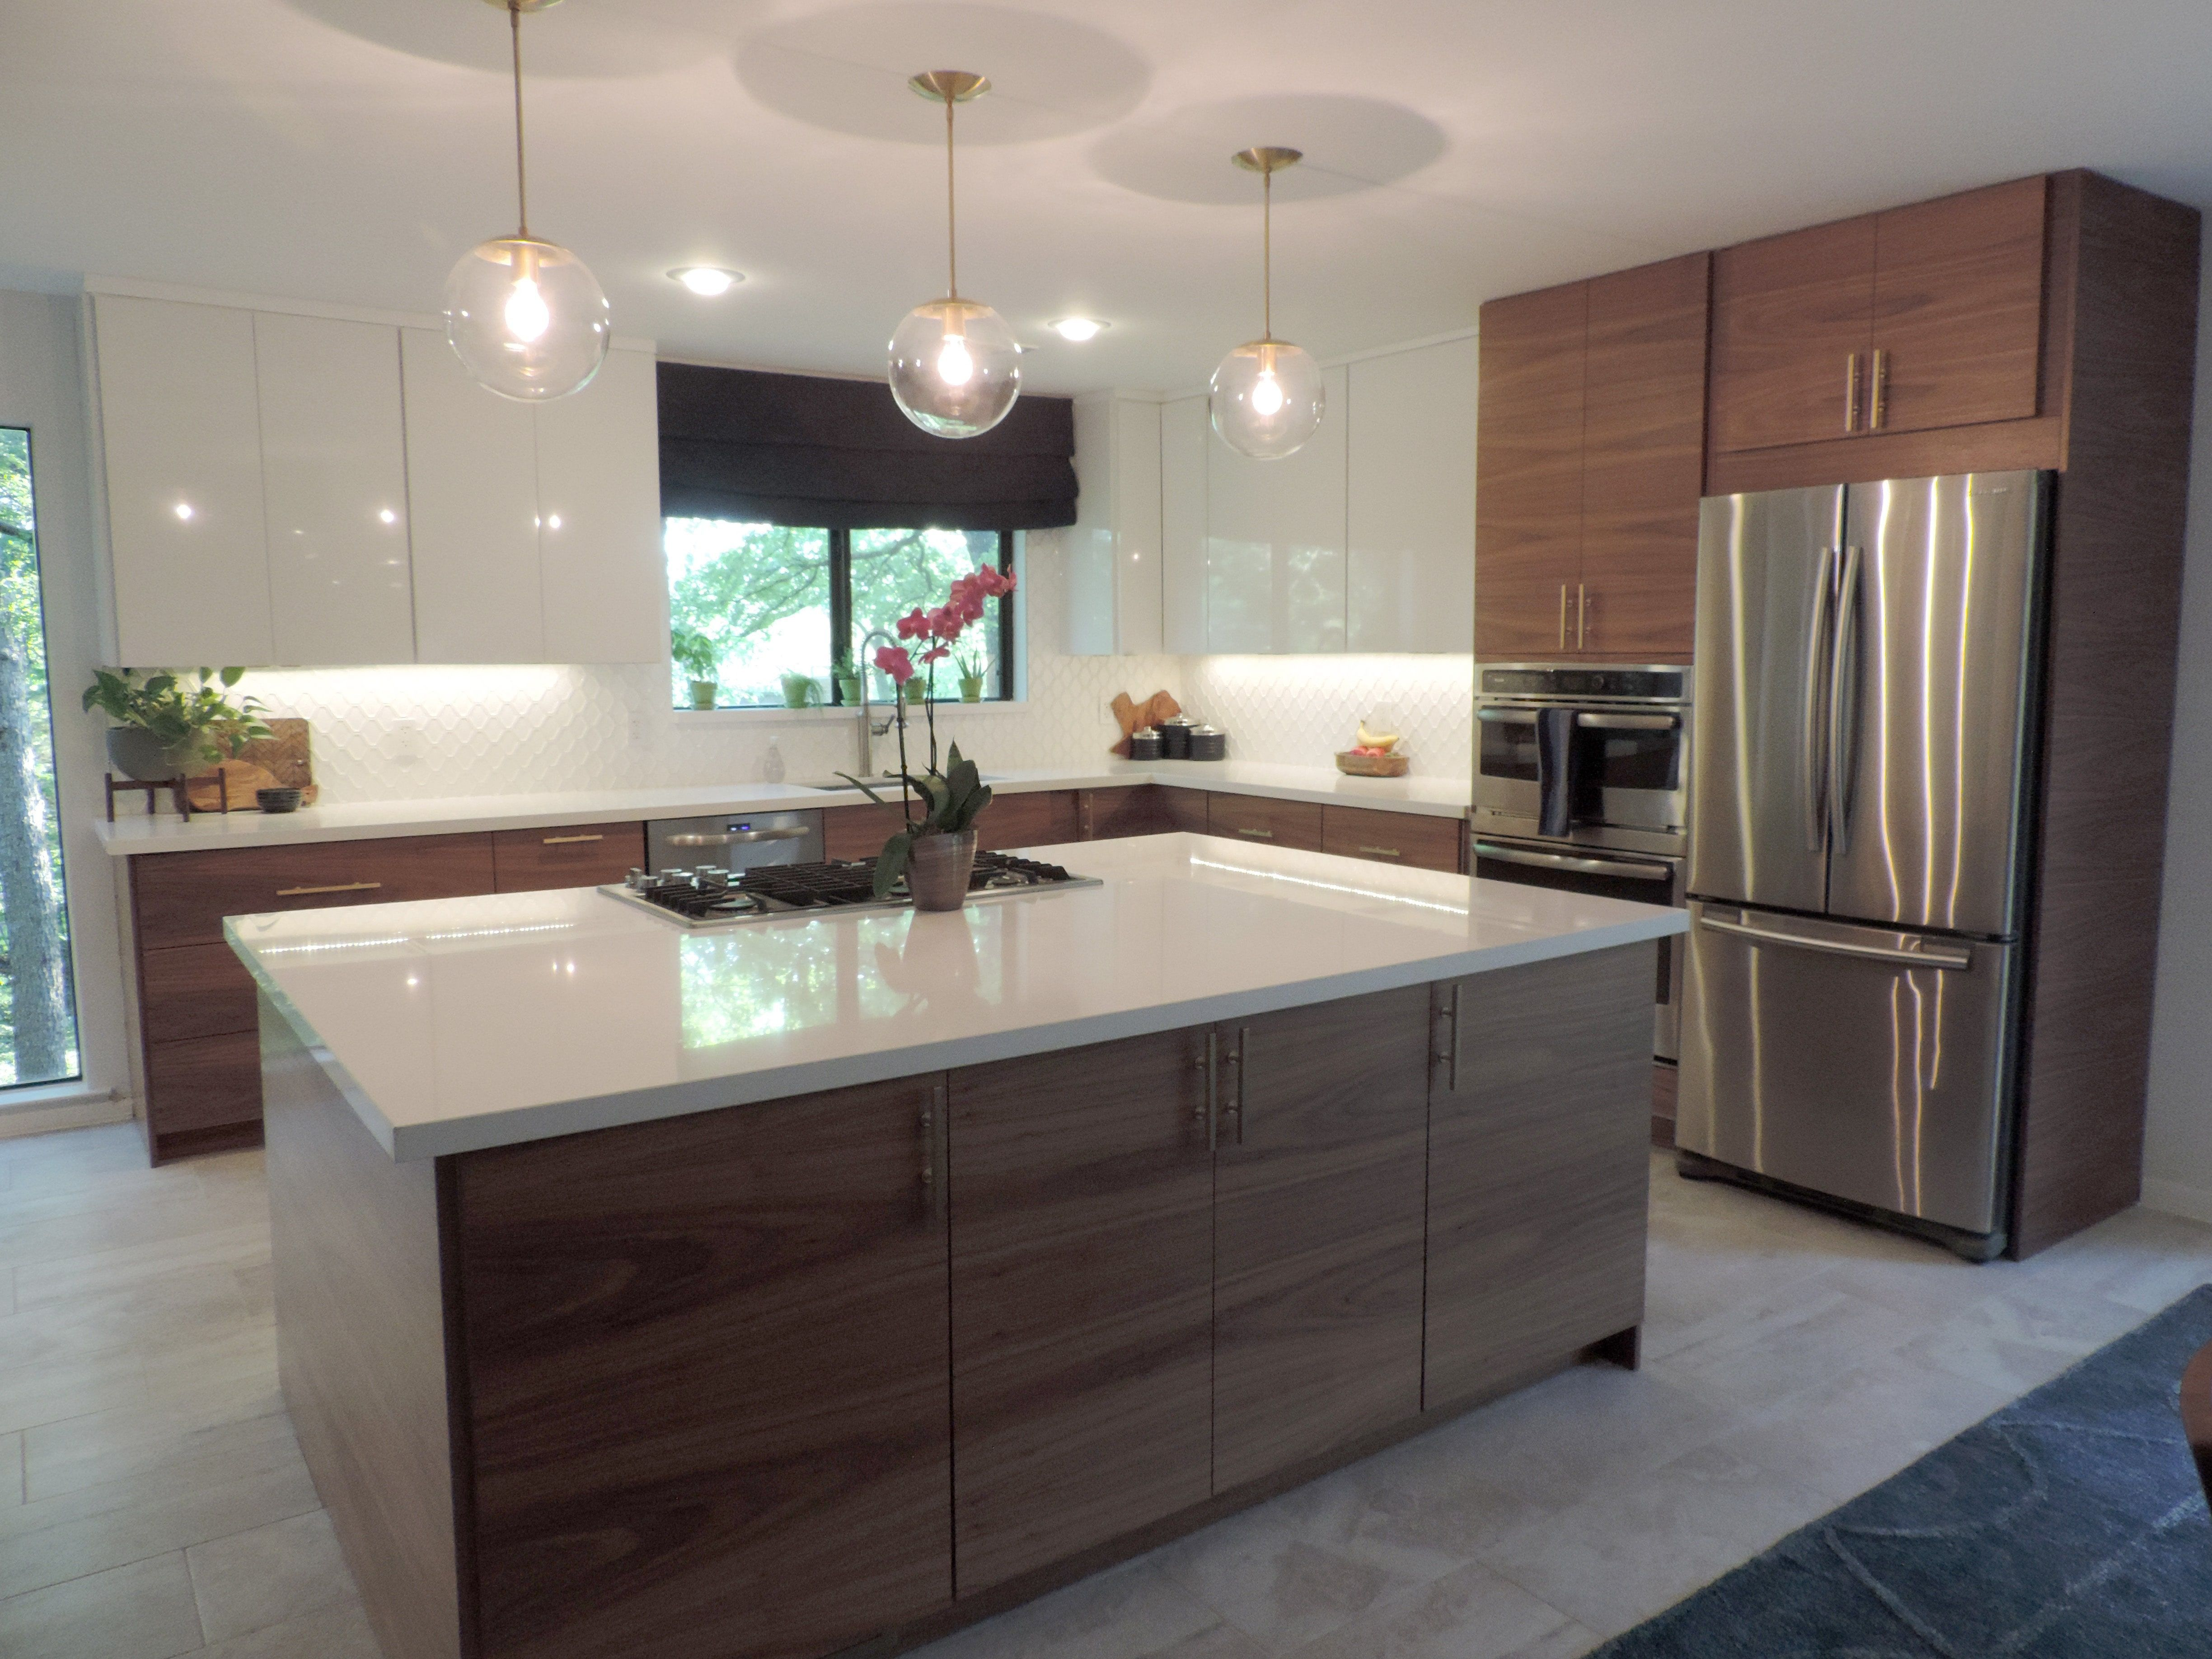 Learn More About How To Style Your Kitchen Design Into The Coolest  Aesthetic! | Www